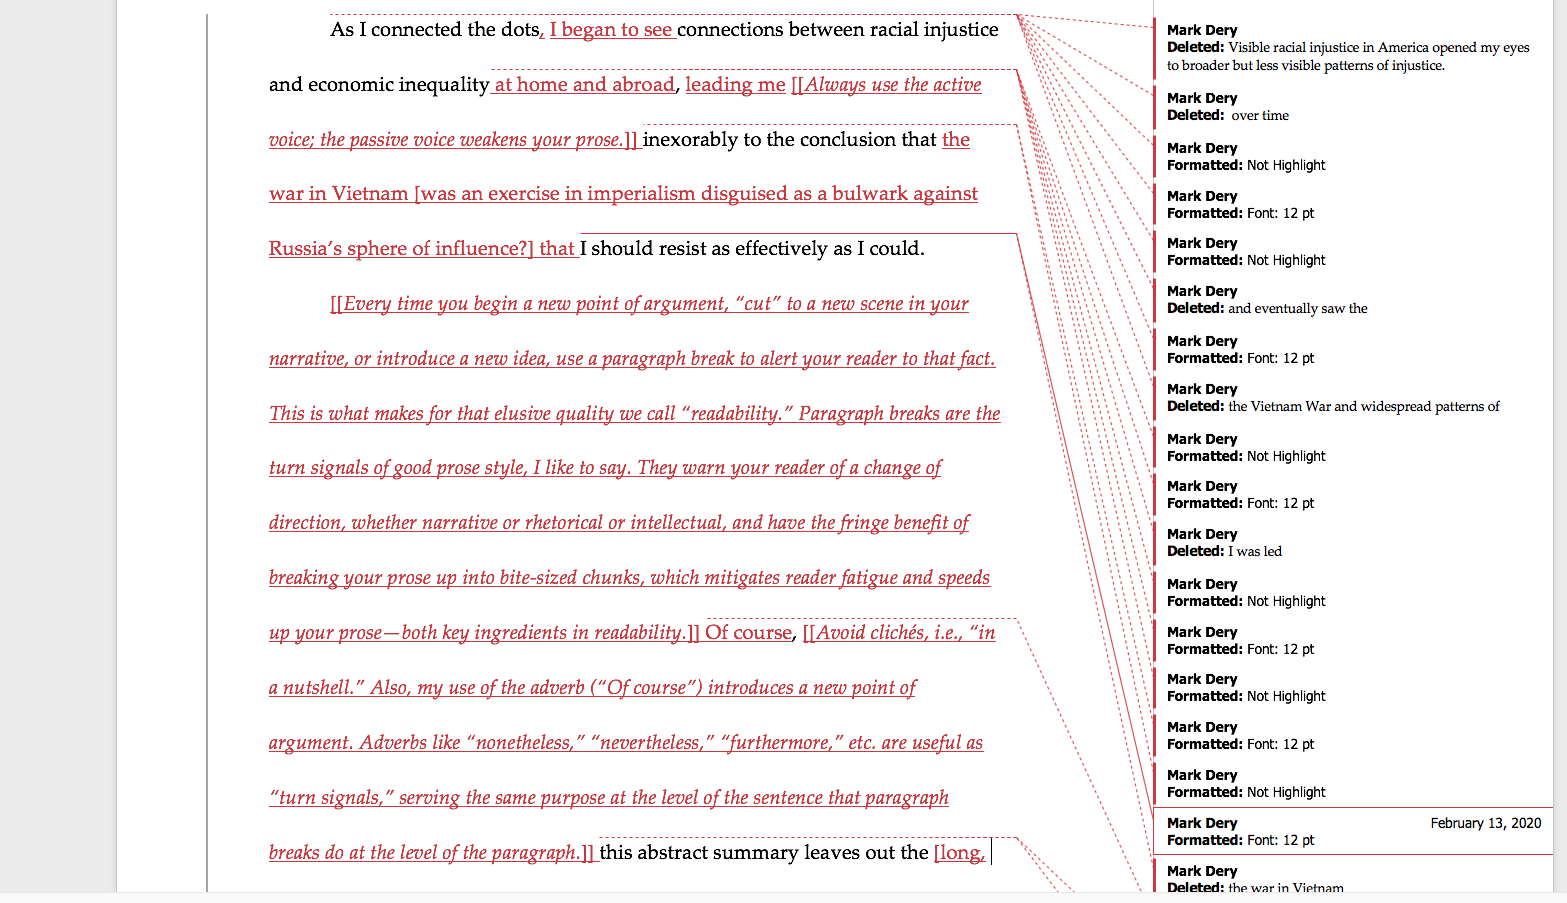 Here's an example of my page-by-page analysis and line-edit